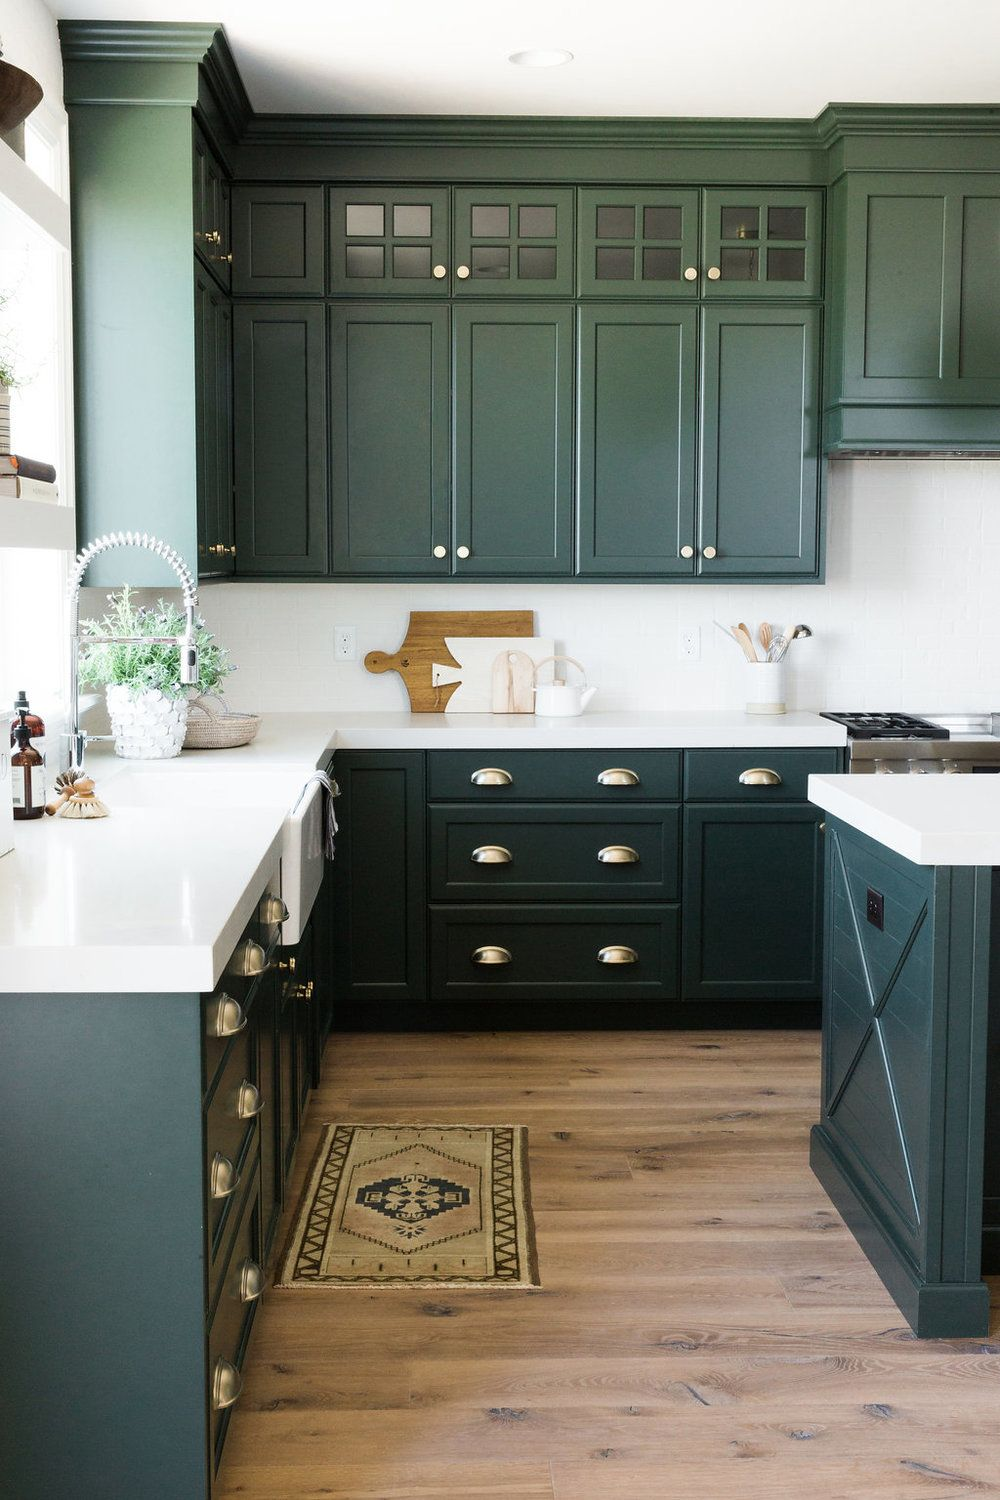 Parade Home Reveal Pt 1 Kitchens Green Kitchen Cabinets